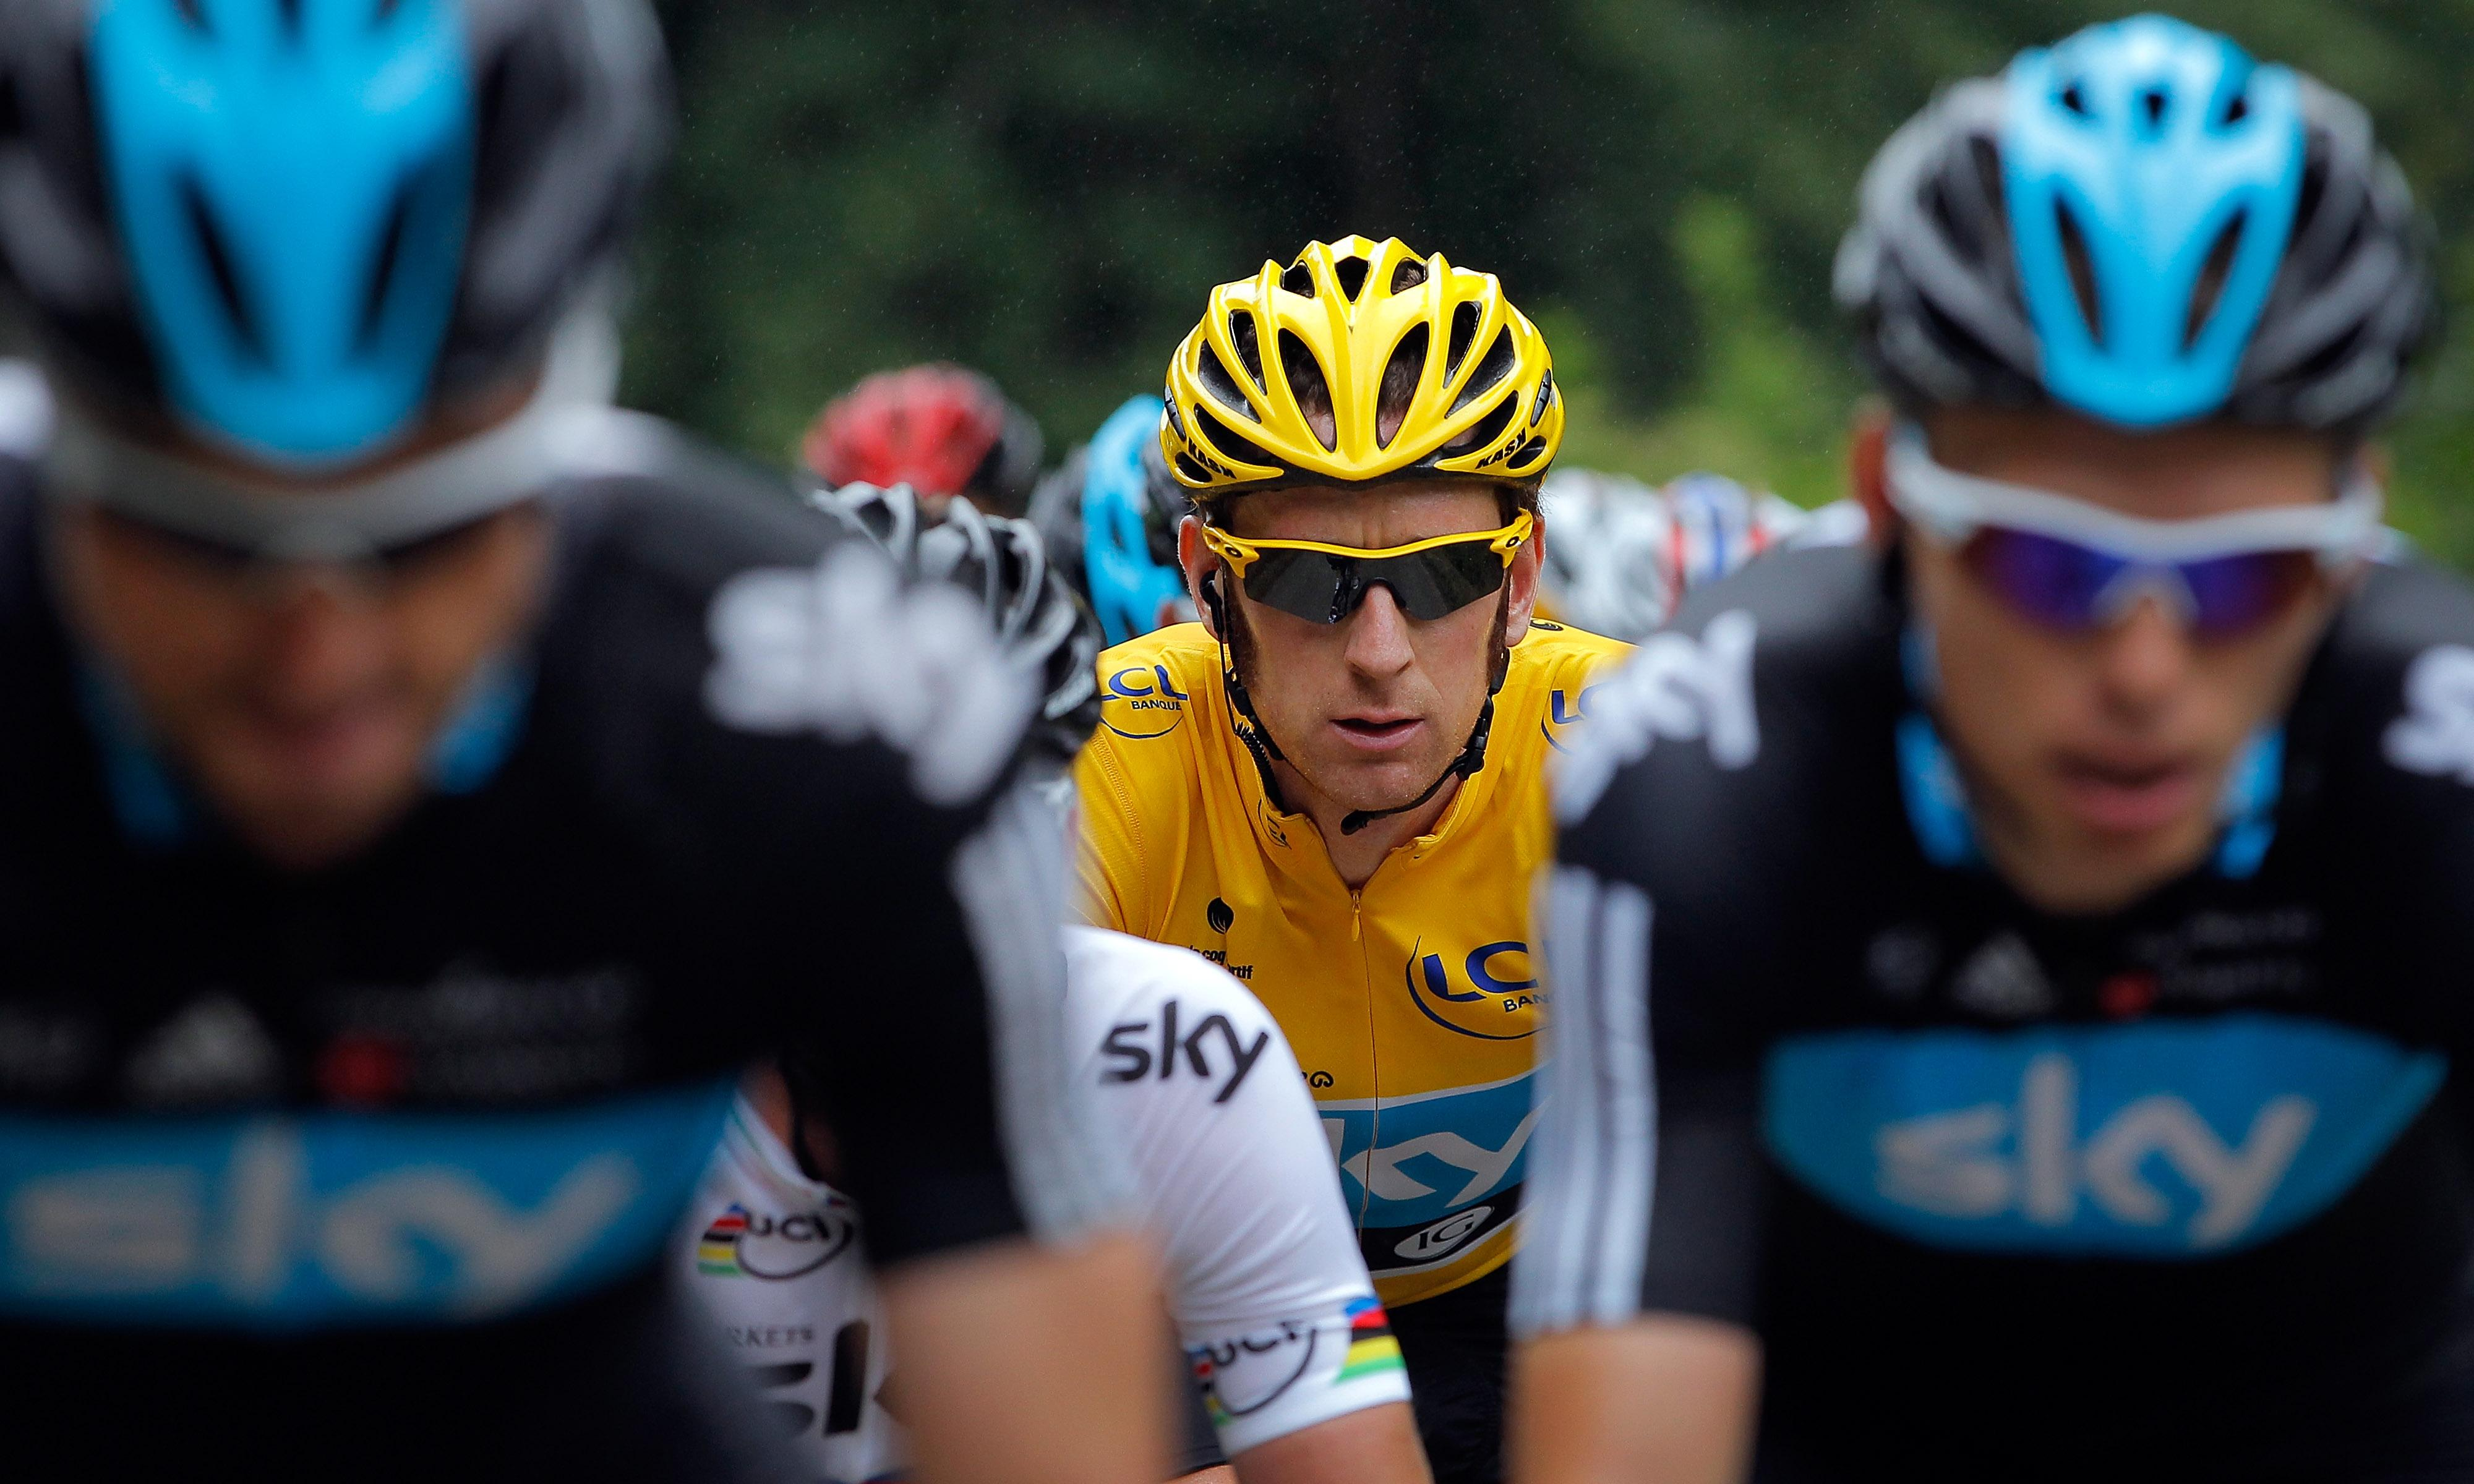 Remarkable drugs report shatters Team Sky's illusion of integrity